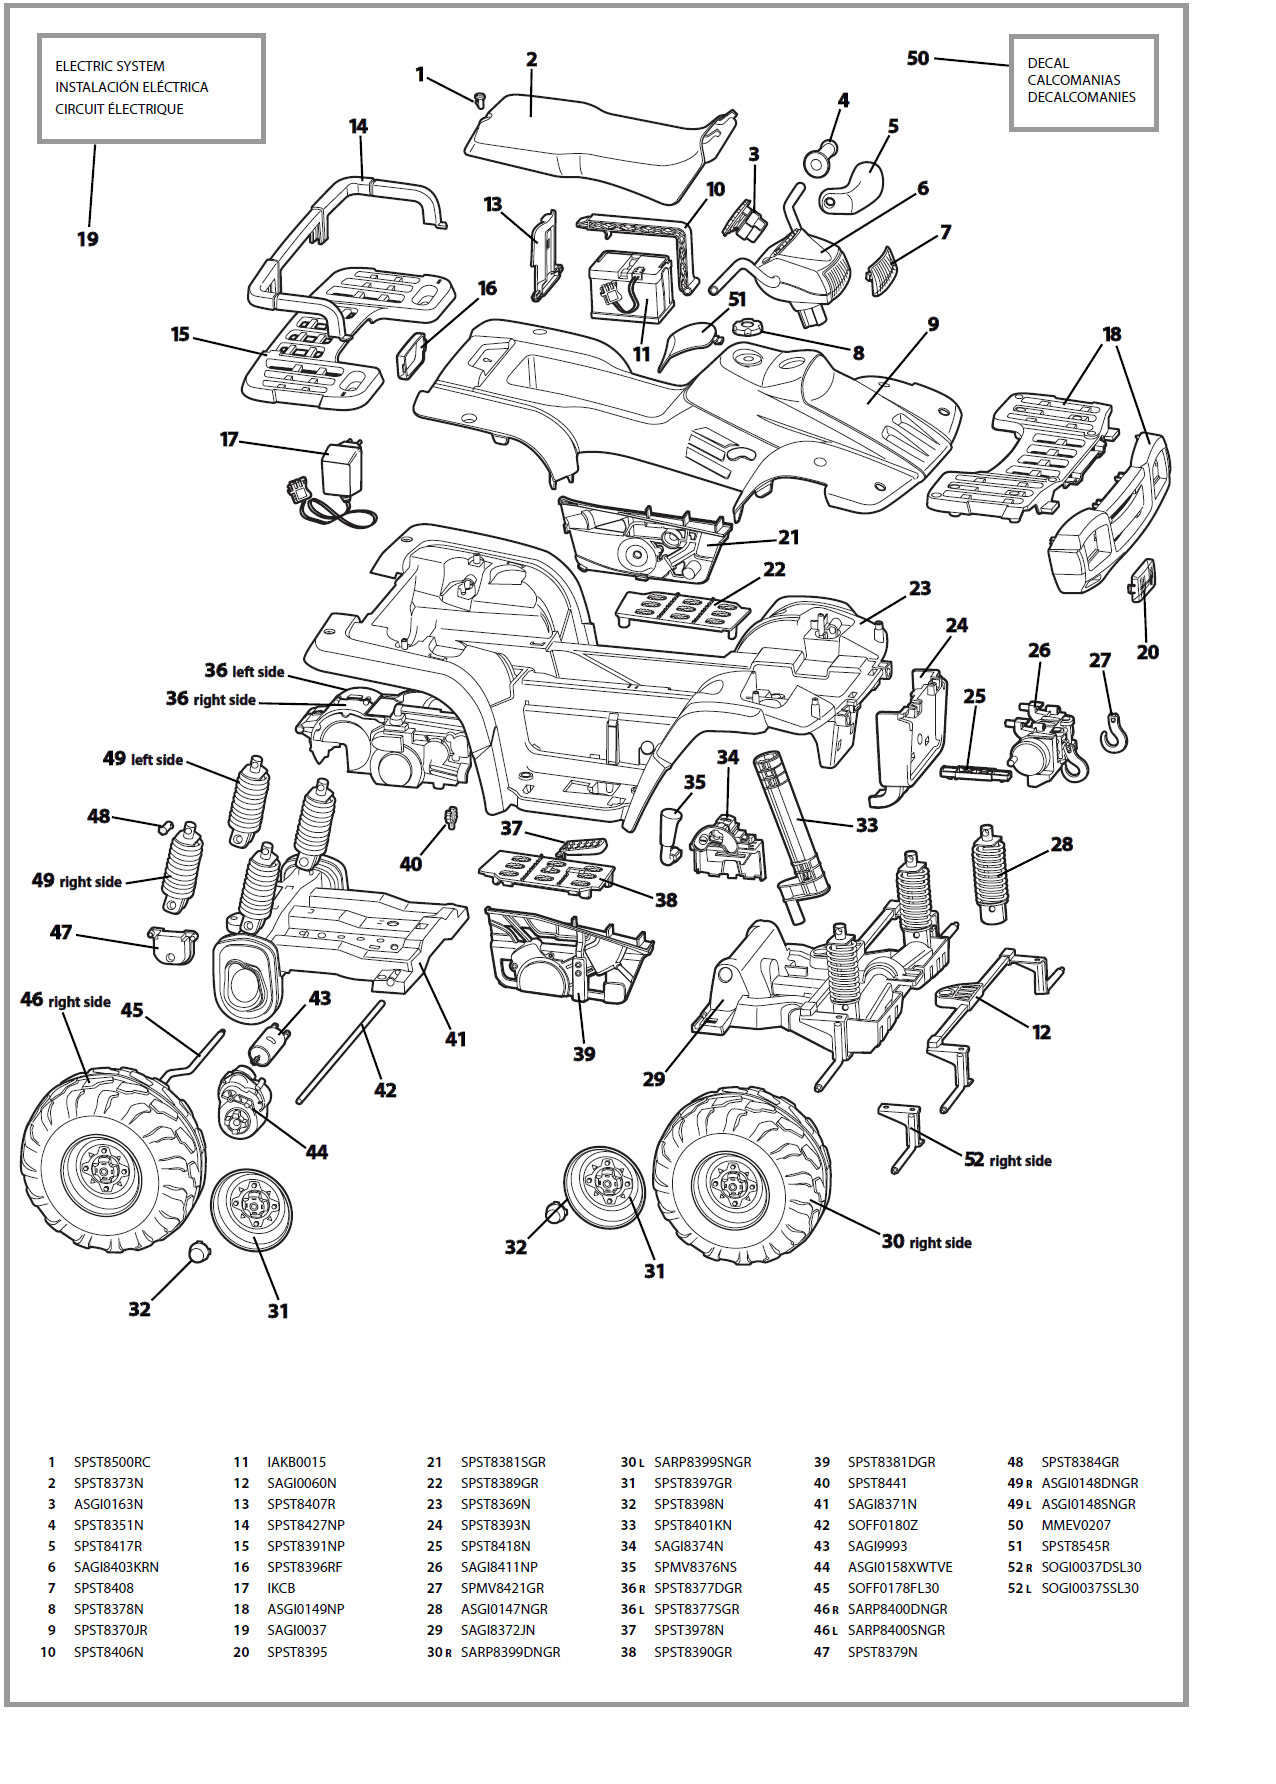 ER4k 16861 besides RepairGuideContent together with P 0900c152801ce4f9 as well Wiring Diagram For A 2001 Kia Sephia further Location Coolant Sending Sensor 1998 Ford Windstar. on nissan d21 fuel wiring